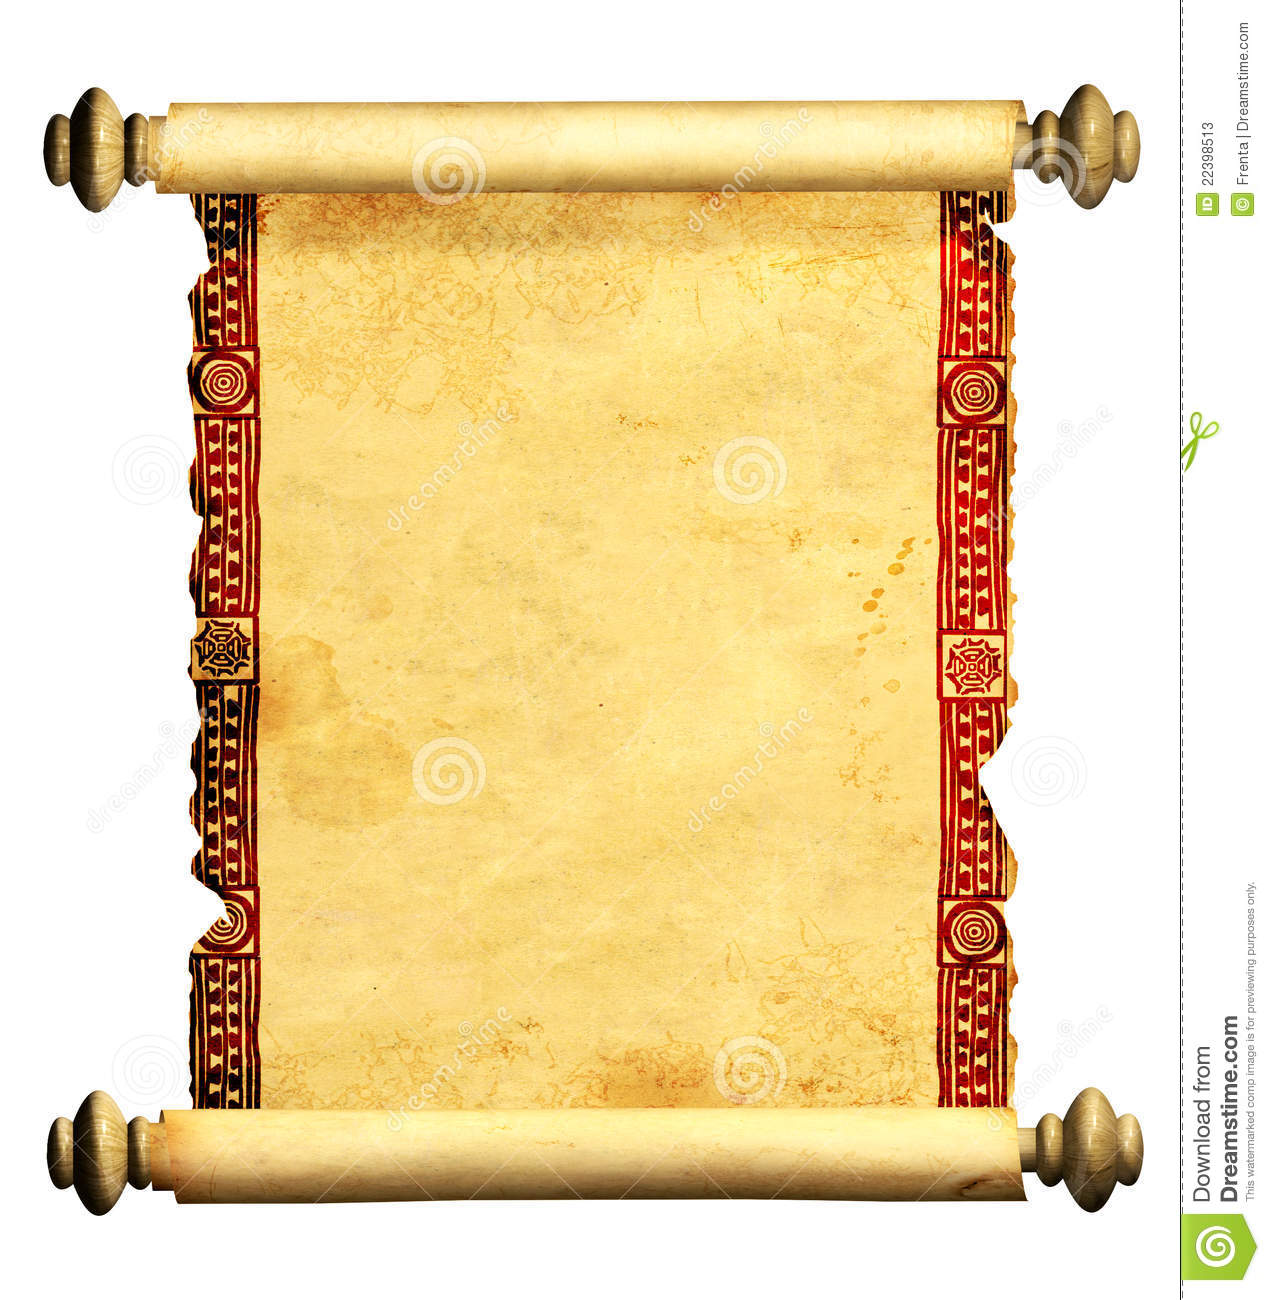 More similar stock images of ` 3d scroll of old parchment `